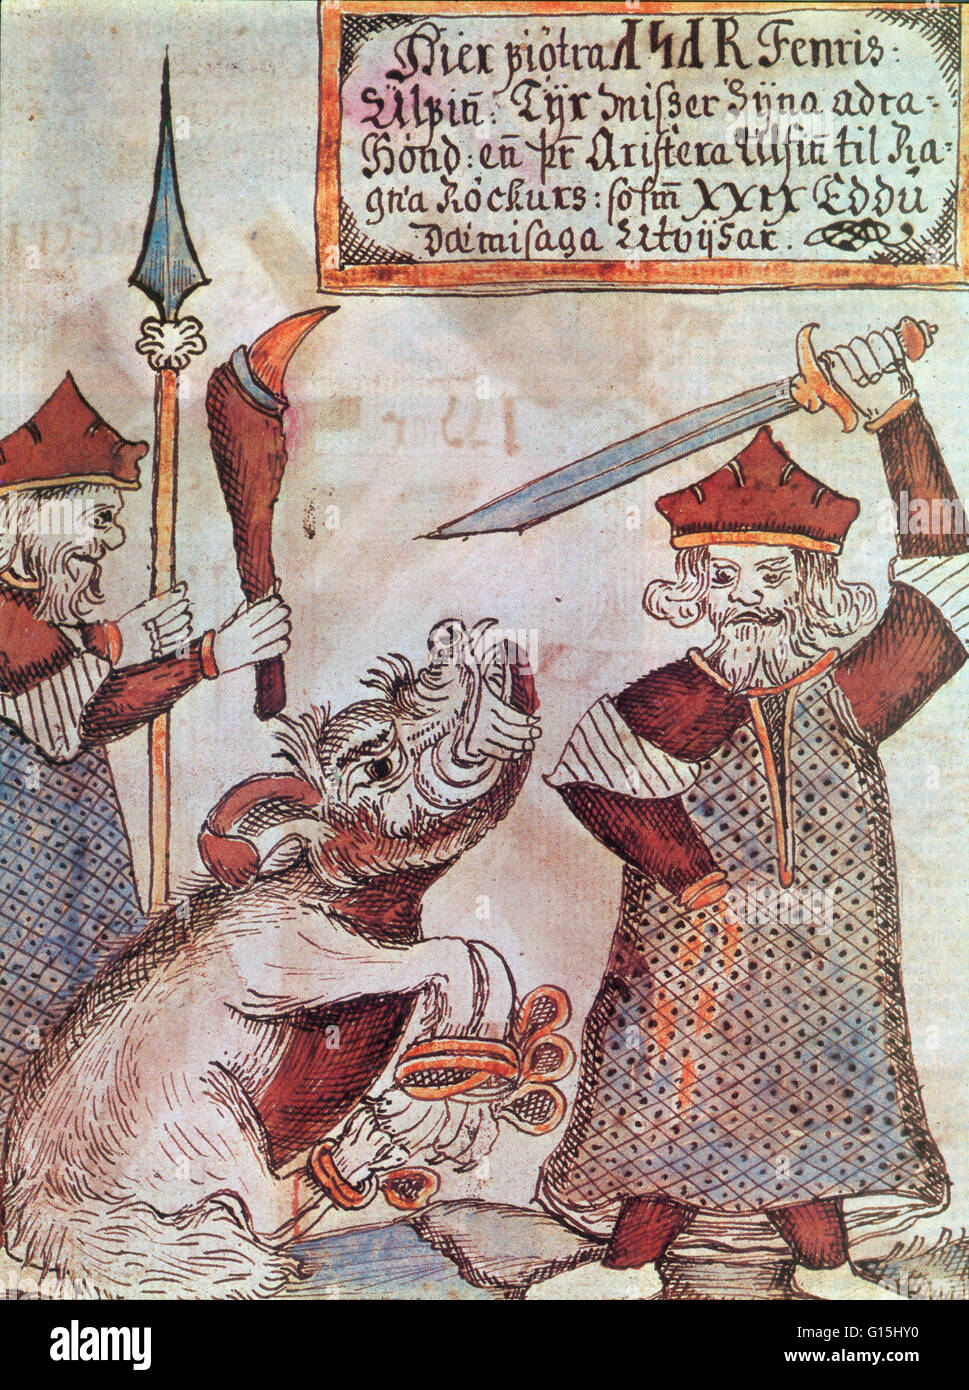 eed13604c Fenrir, the monstrous wolf of Norse mythology, bites the hand off of a  sword-wielding Tyr, the Norse god of war. Illustration from an 18th century  Icelandic ...